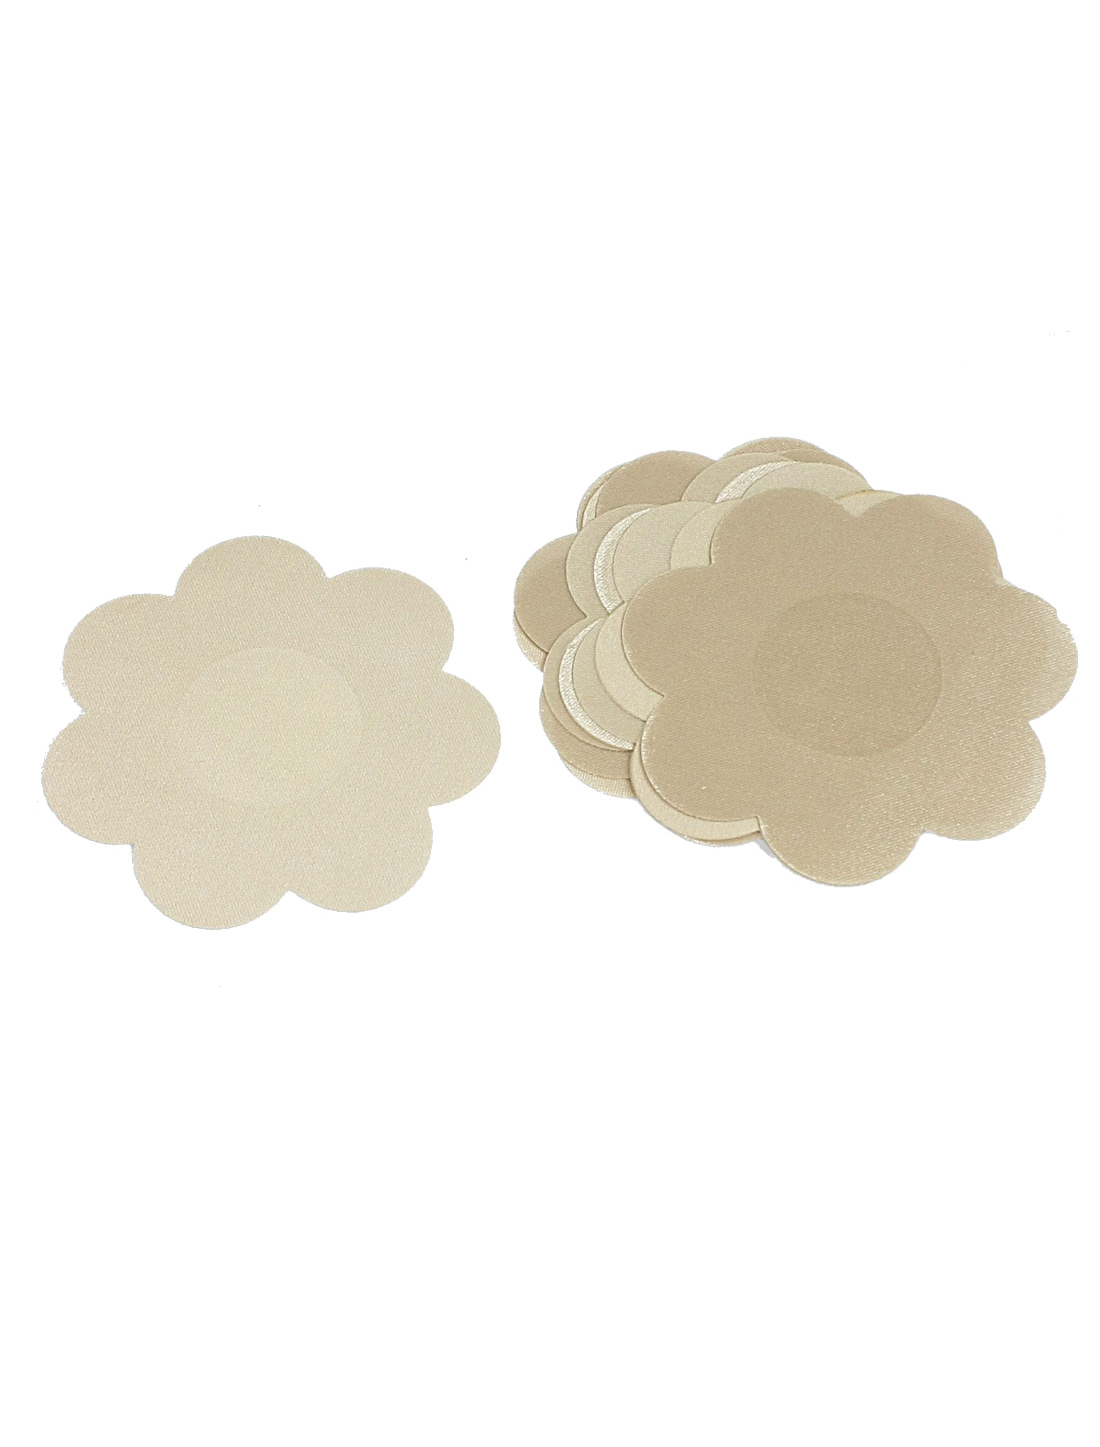 10 Pcs Flower Shaped Beige Polyester Nipple Cover Pad for Ladies